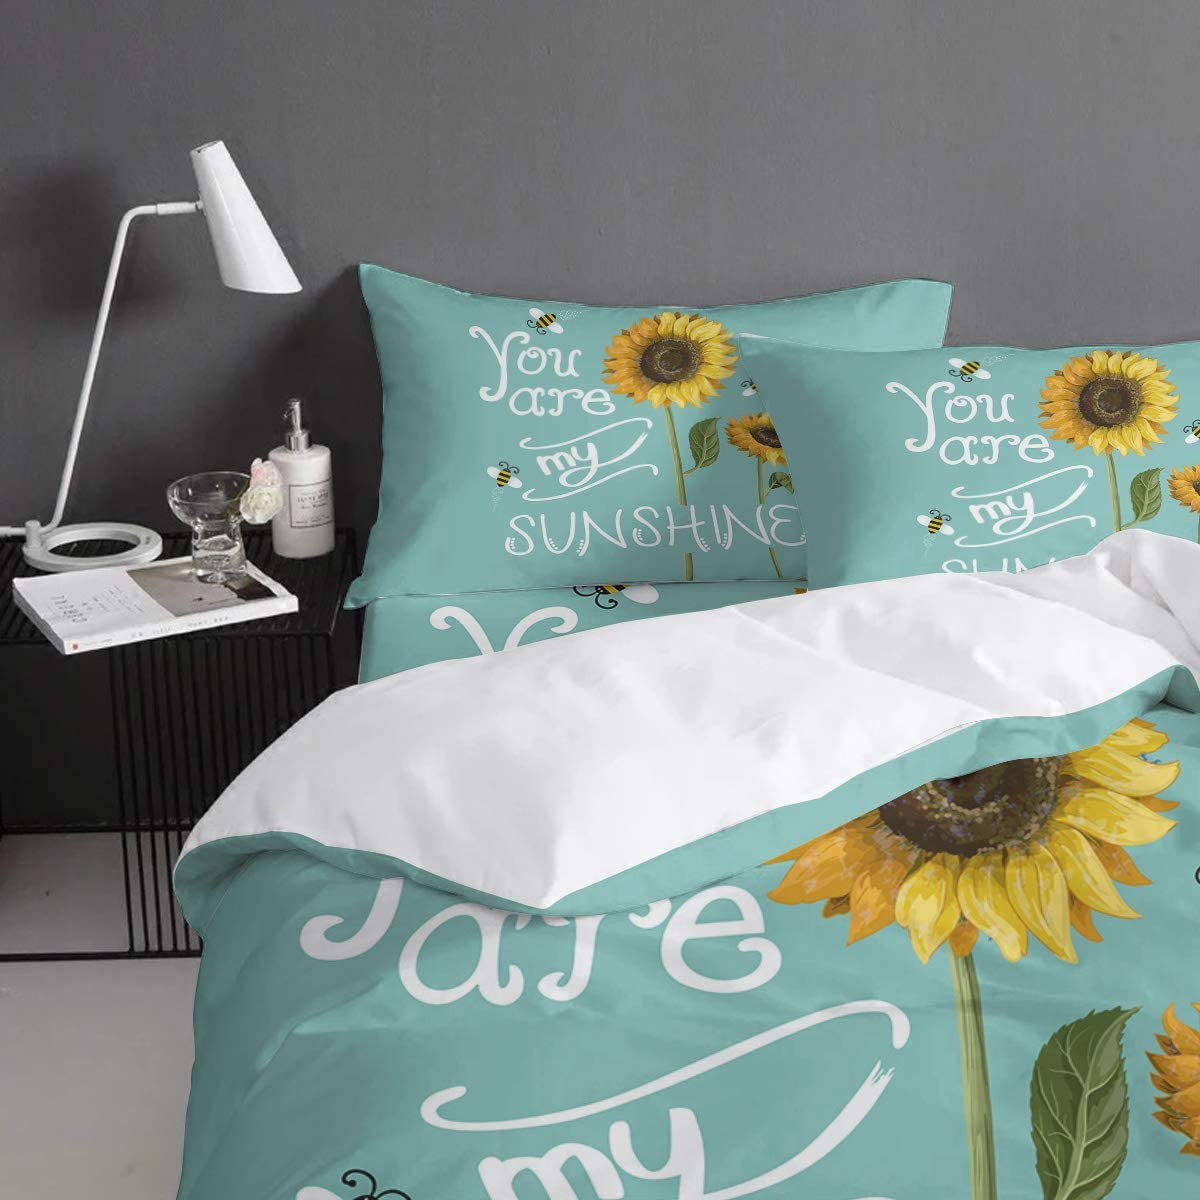 Bed Sheet Pillow Shams Sunflower Duvet Cover Set Printed 4 Pcs Bedding Set Queen Size Include Duvet Cover You Are My Sunshine Soft Quilt Sets For Children Adults Kids Furniture Décor Storage